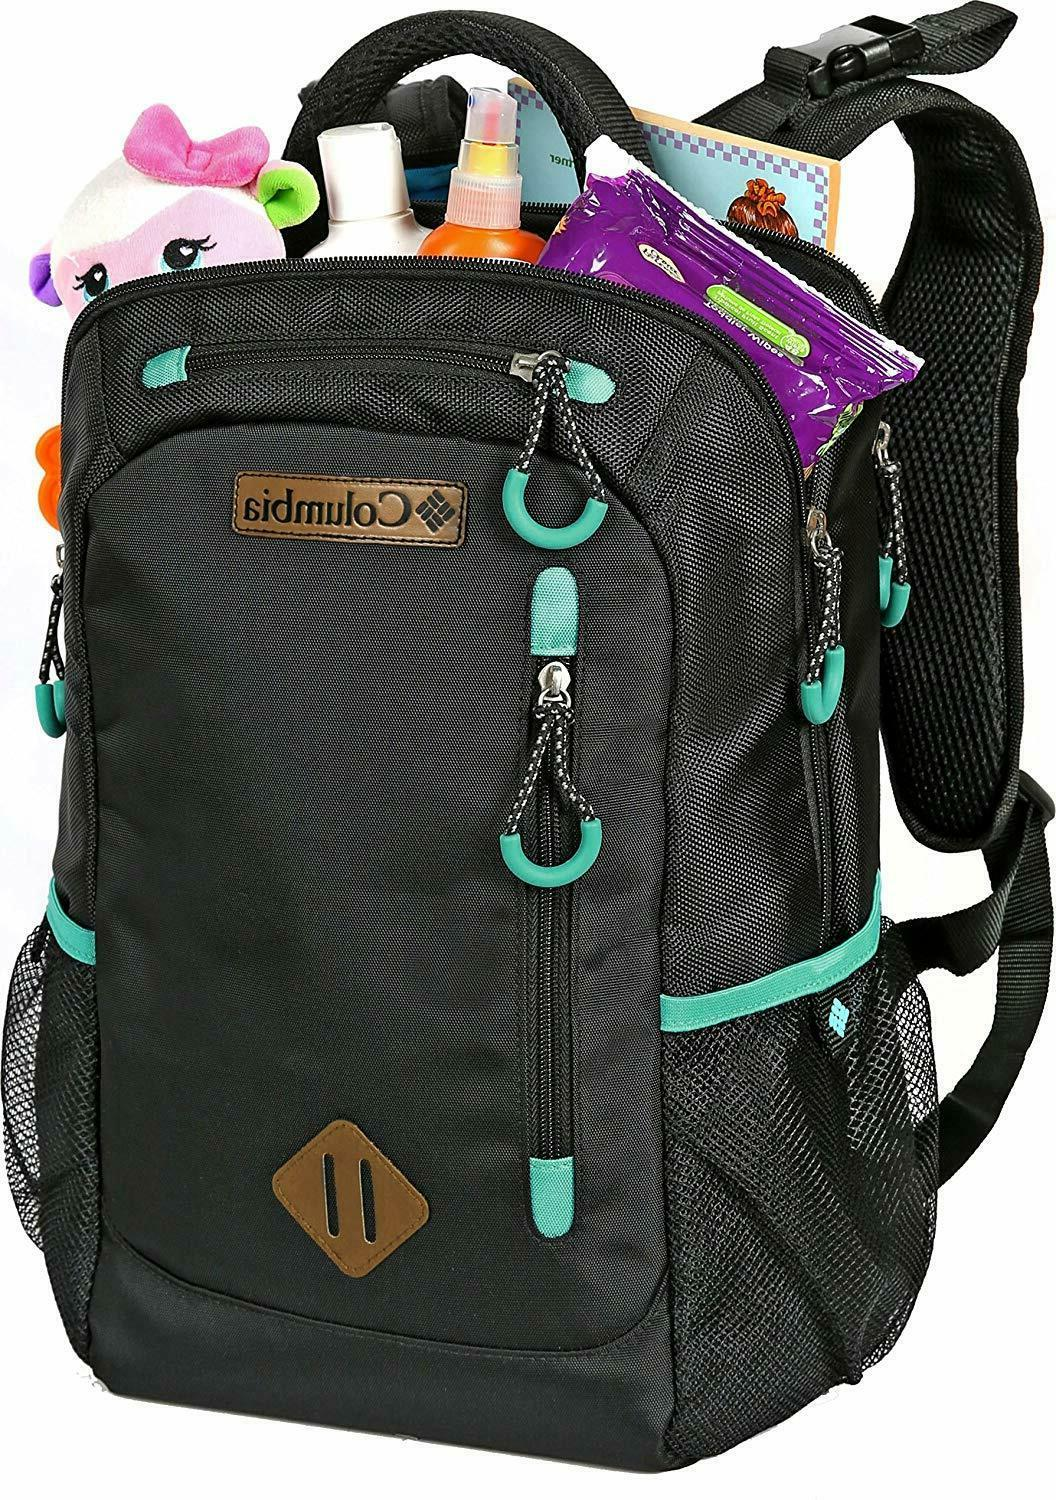 carson pass backpack diaper bag